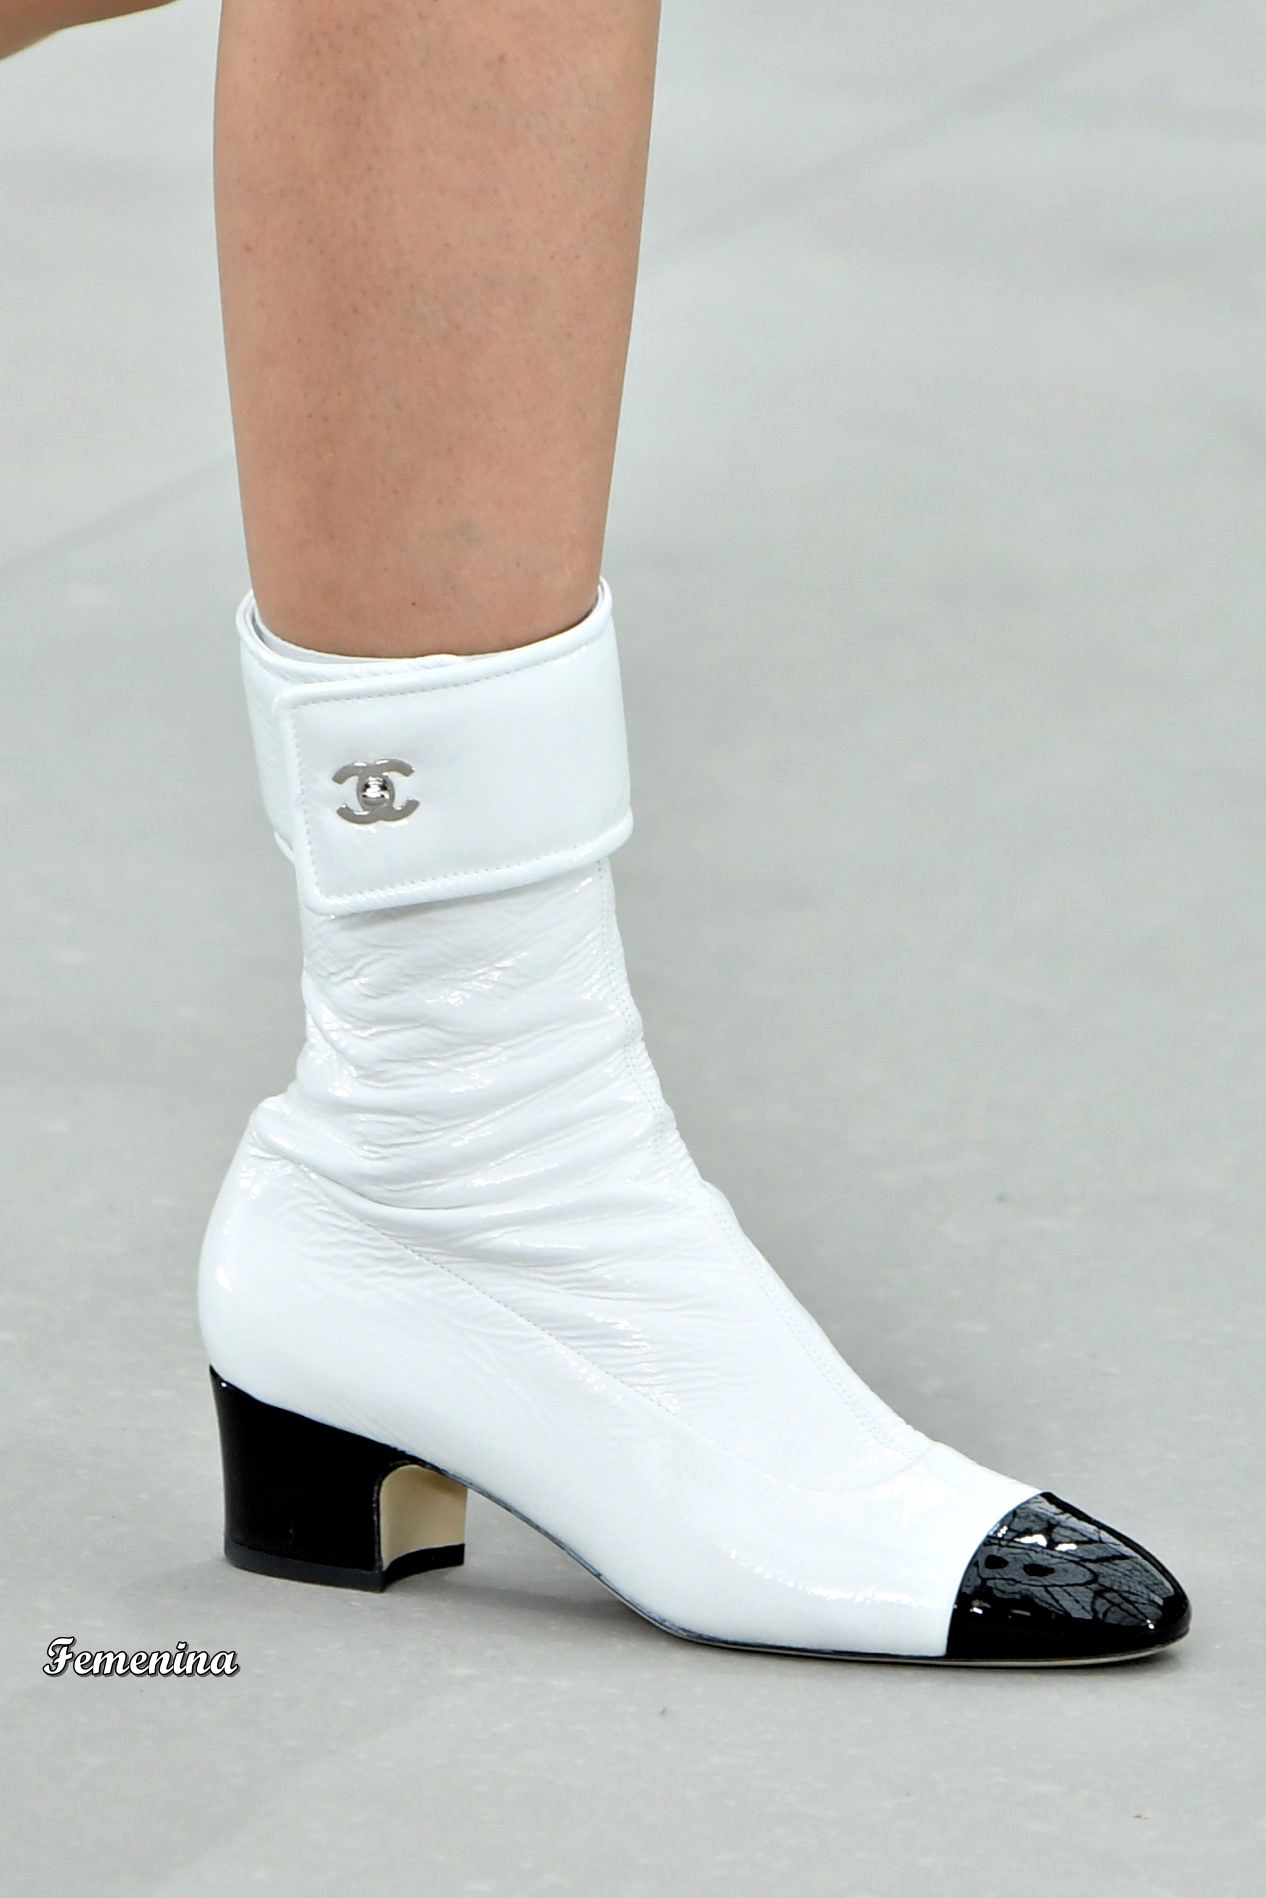 Chanel Resort 2020   Chanel shoes